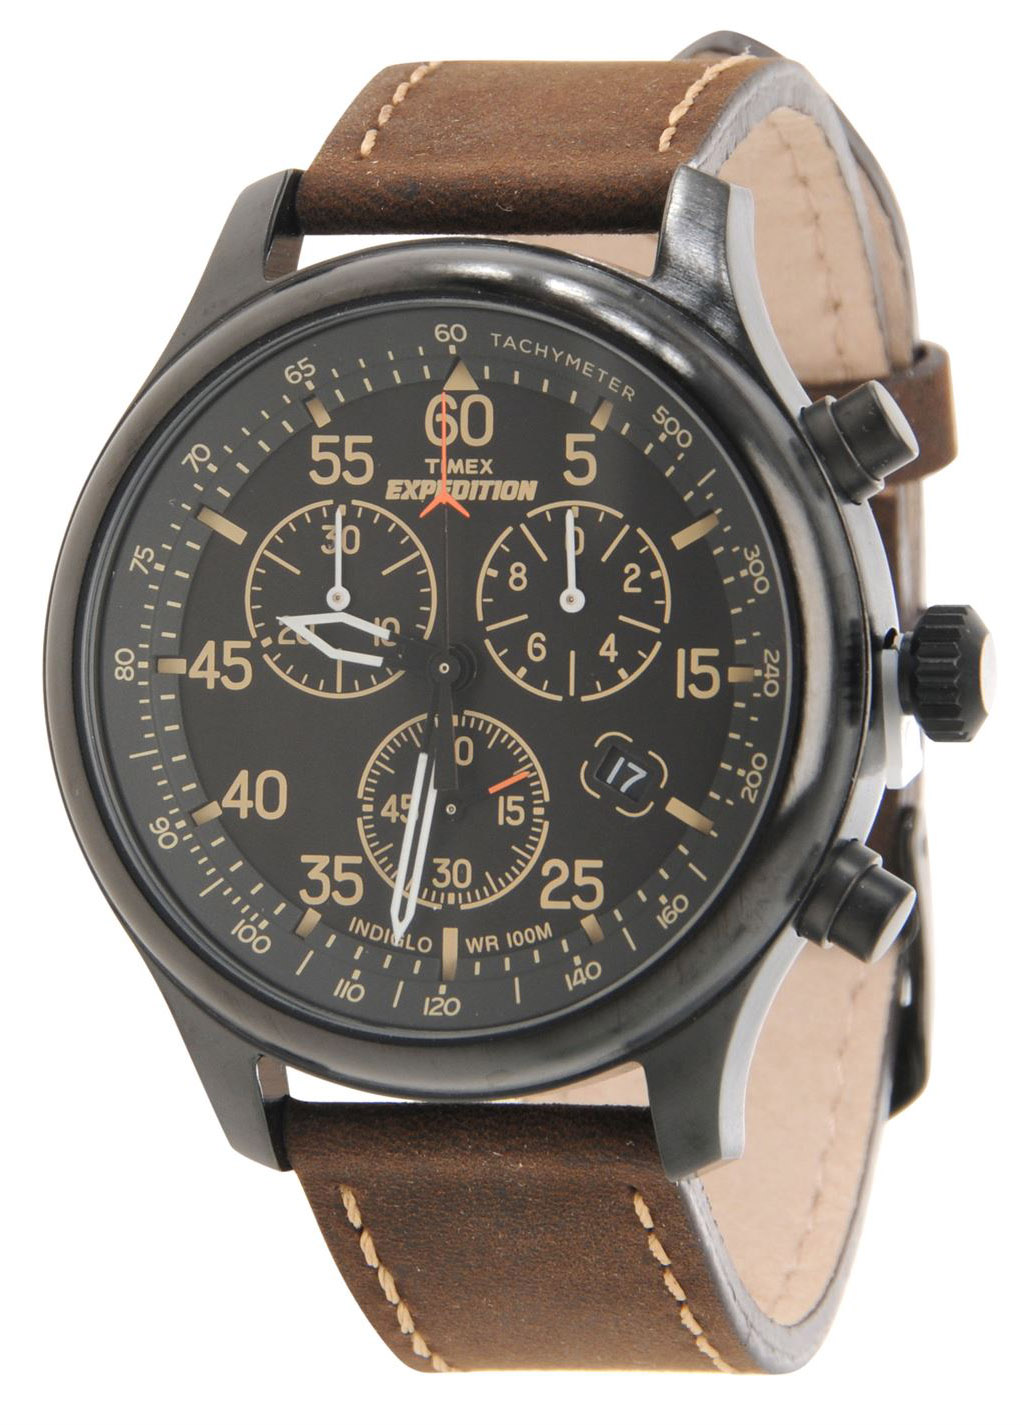 Timex Expedition Field Chronograph - 52.45$